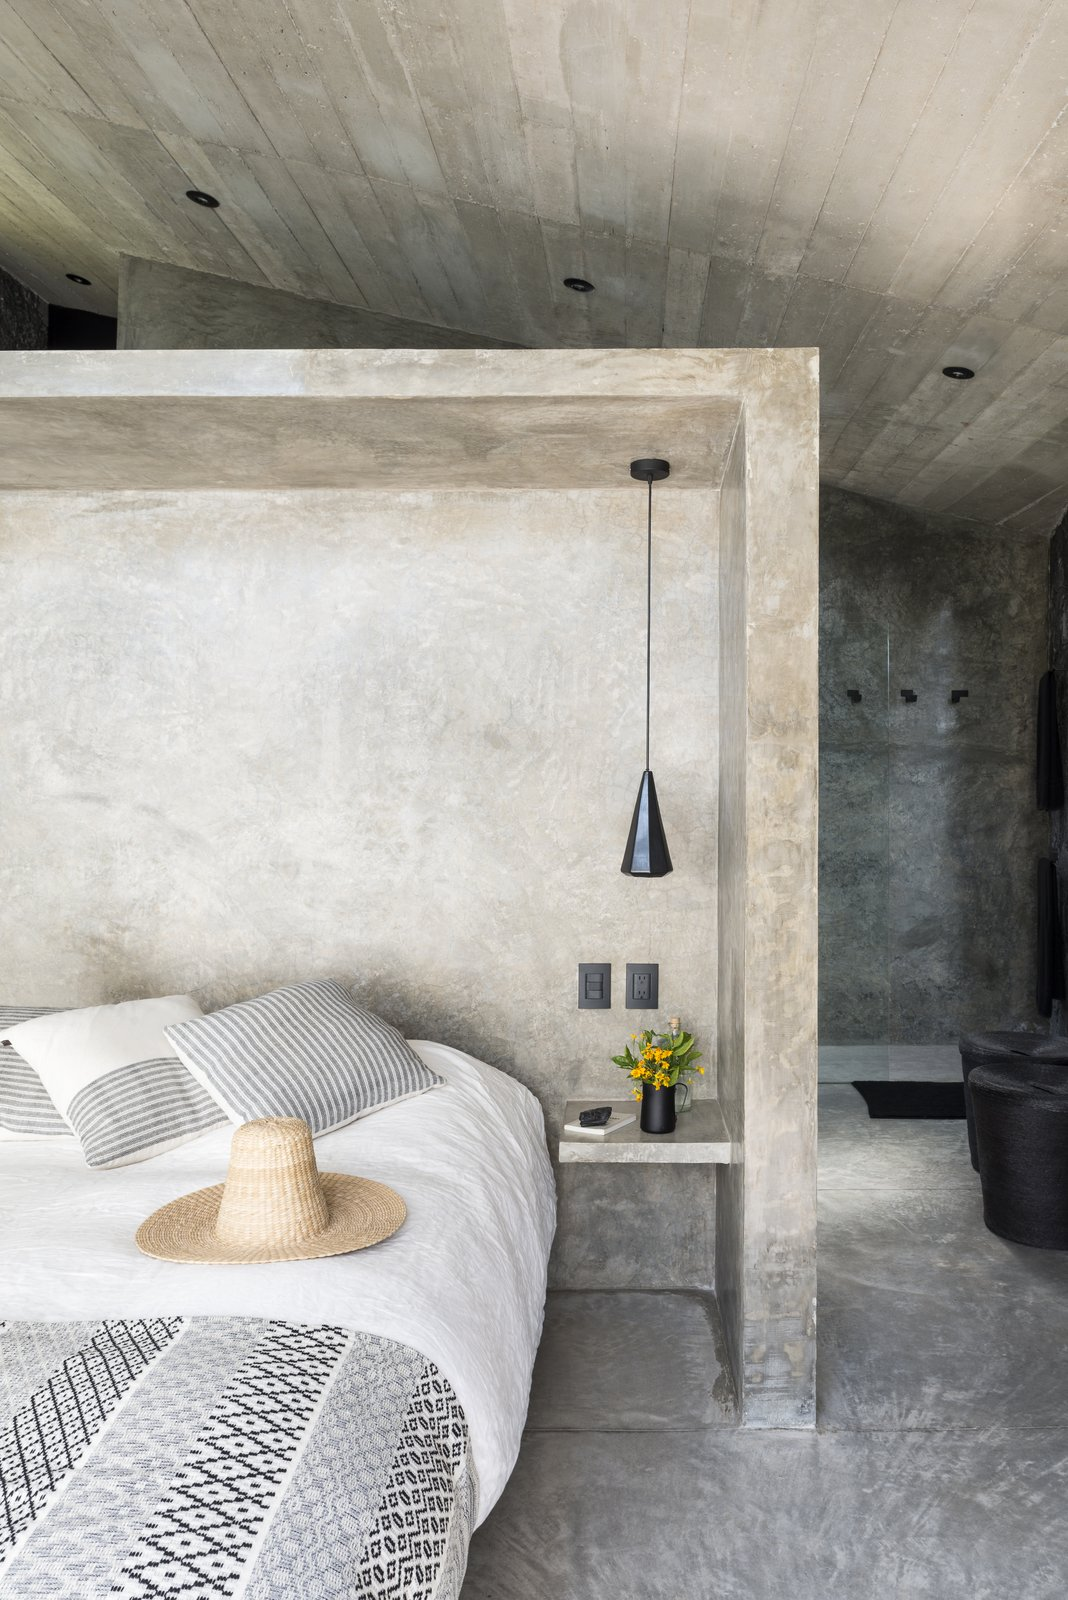 Bedroom, Cement Tile, Bed, Night Stands, Recessed, Concrete, and Pendant Beautiful minimal interiors are featured throughout.  Best Bedroom Pendant Cement Tile Photos from A Commanding Mexican Home of Stone and Concrete Is For Sale